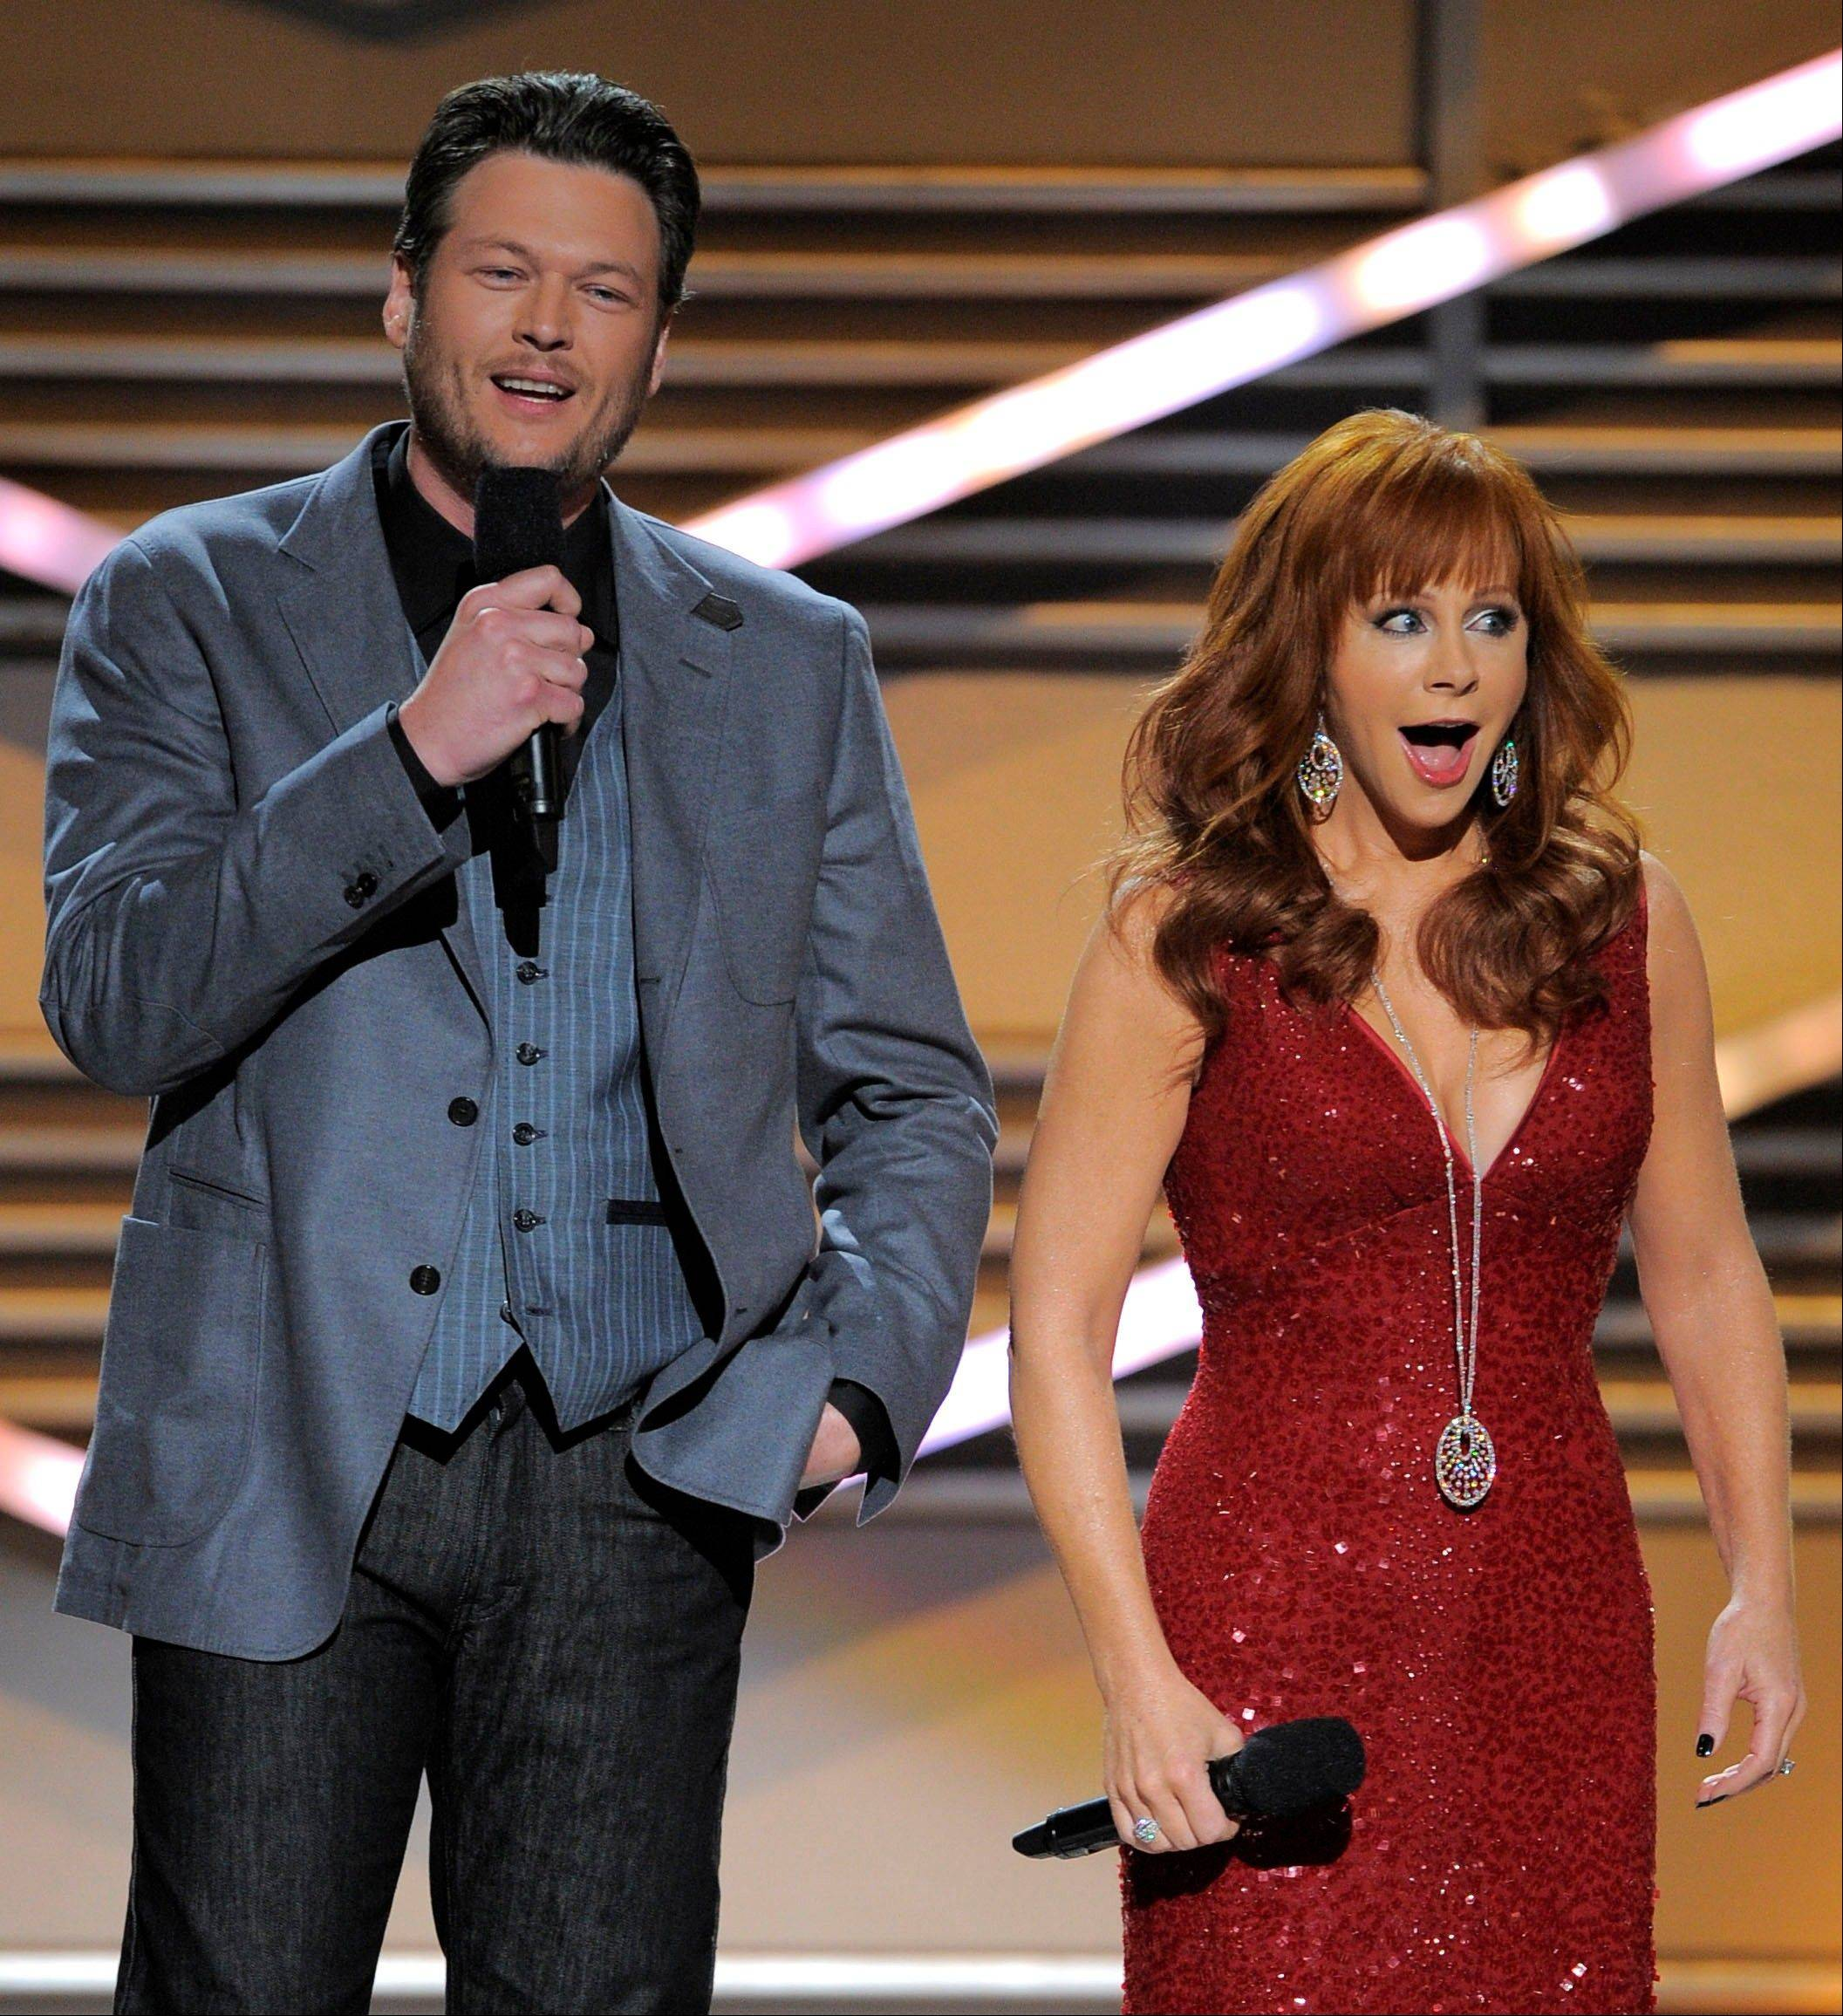 Hosts Blake Shelton and Reba McEntire have a little fun onstage at the 47th Annual Academy of Country Music Awards on Sunday in Las Vegas. Shelton would go on to win male vocalist of the year.